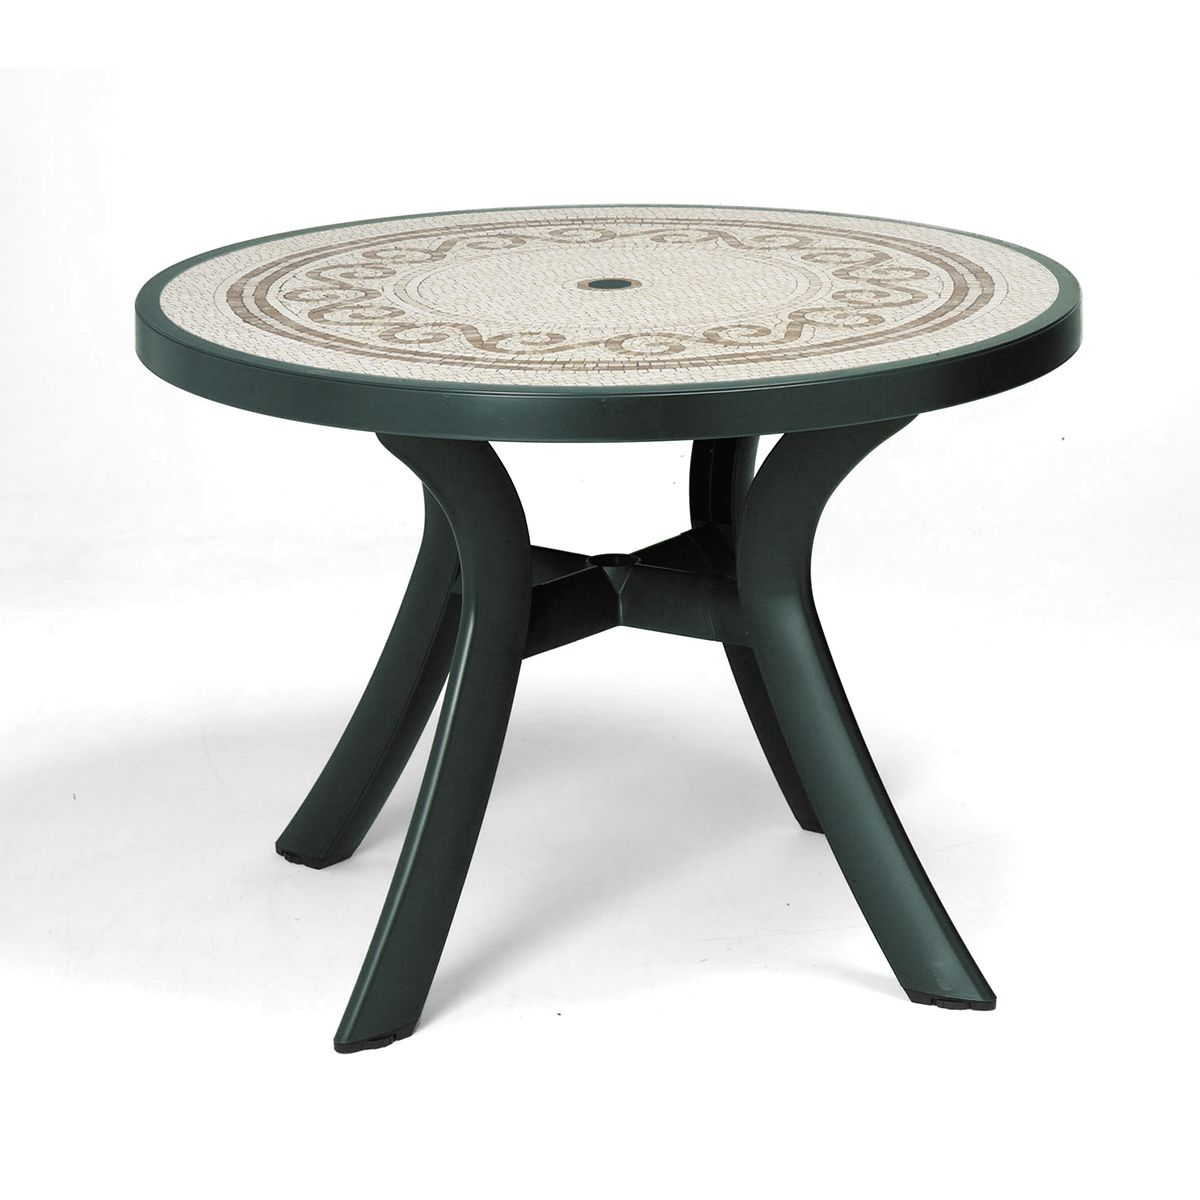 Table de jardin ronde zendart design - Table de jardin design italien ...